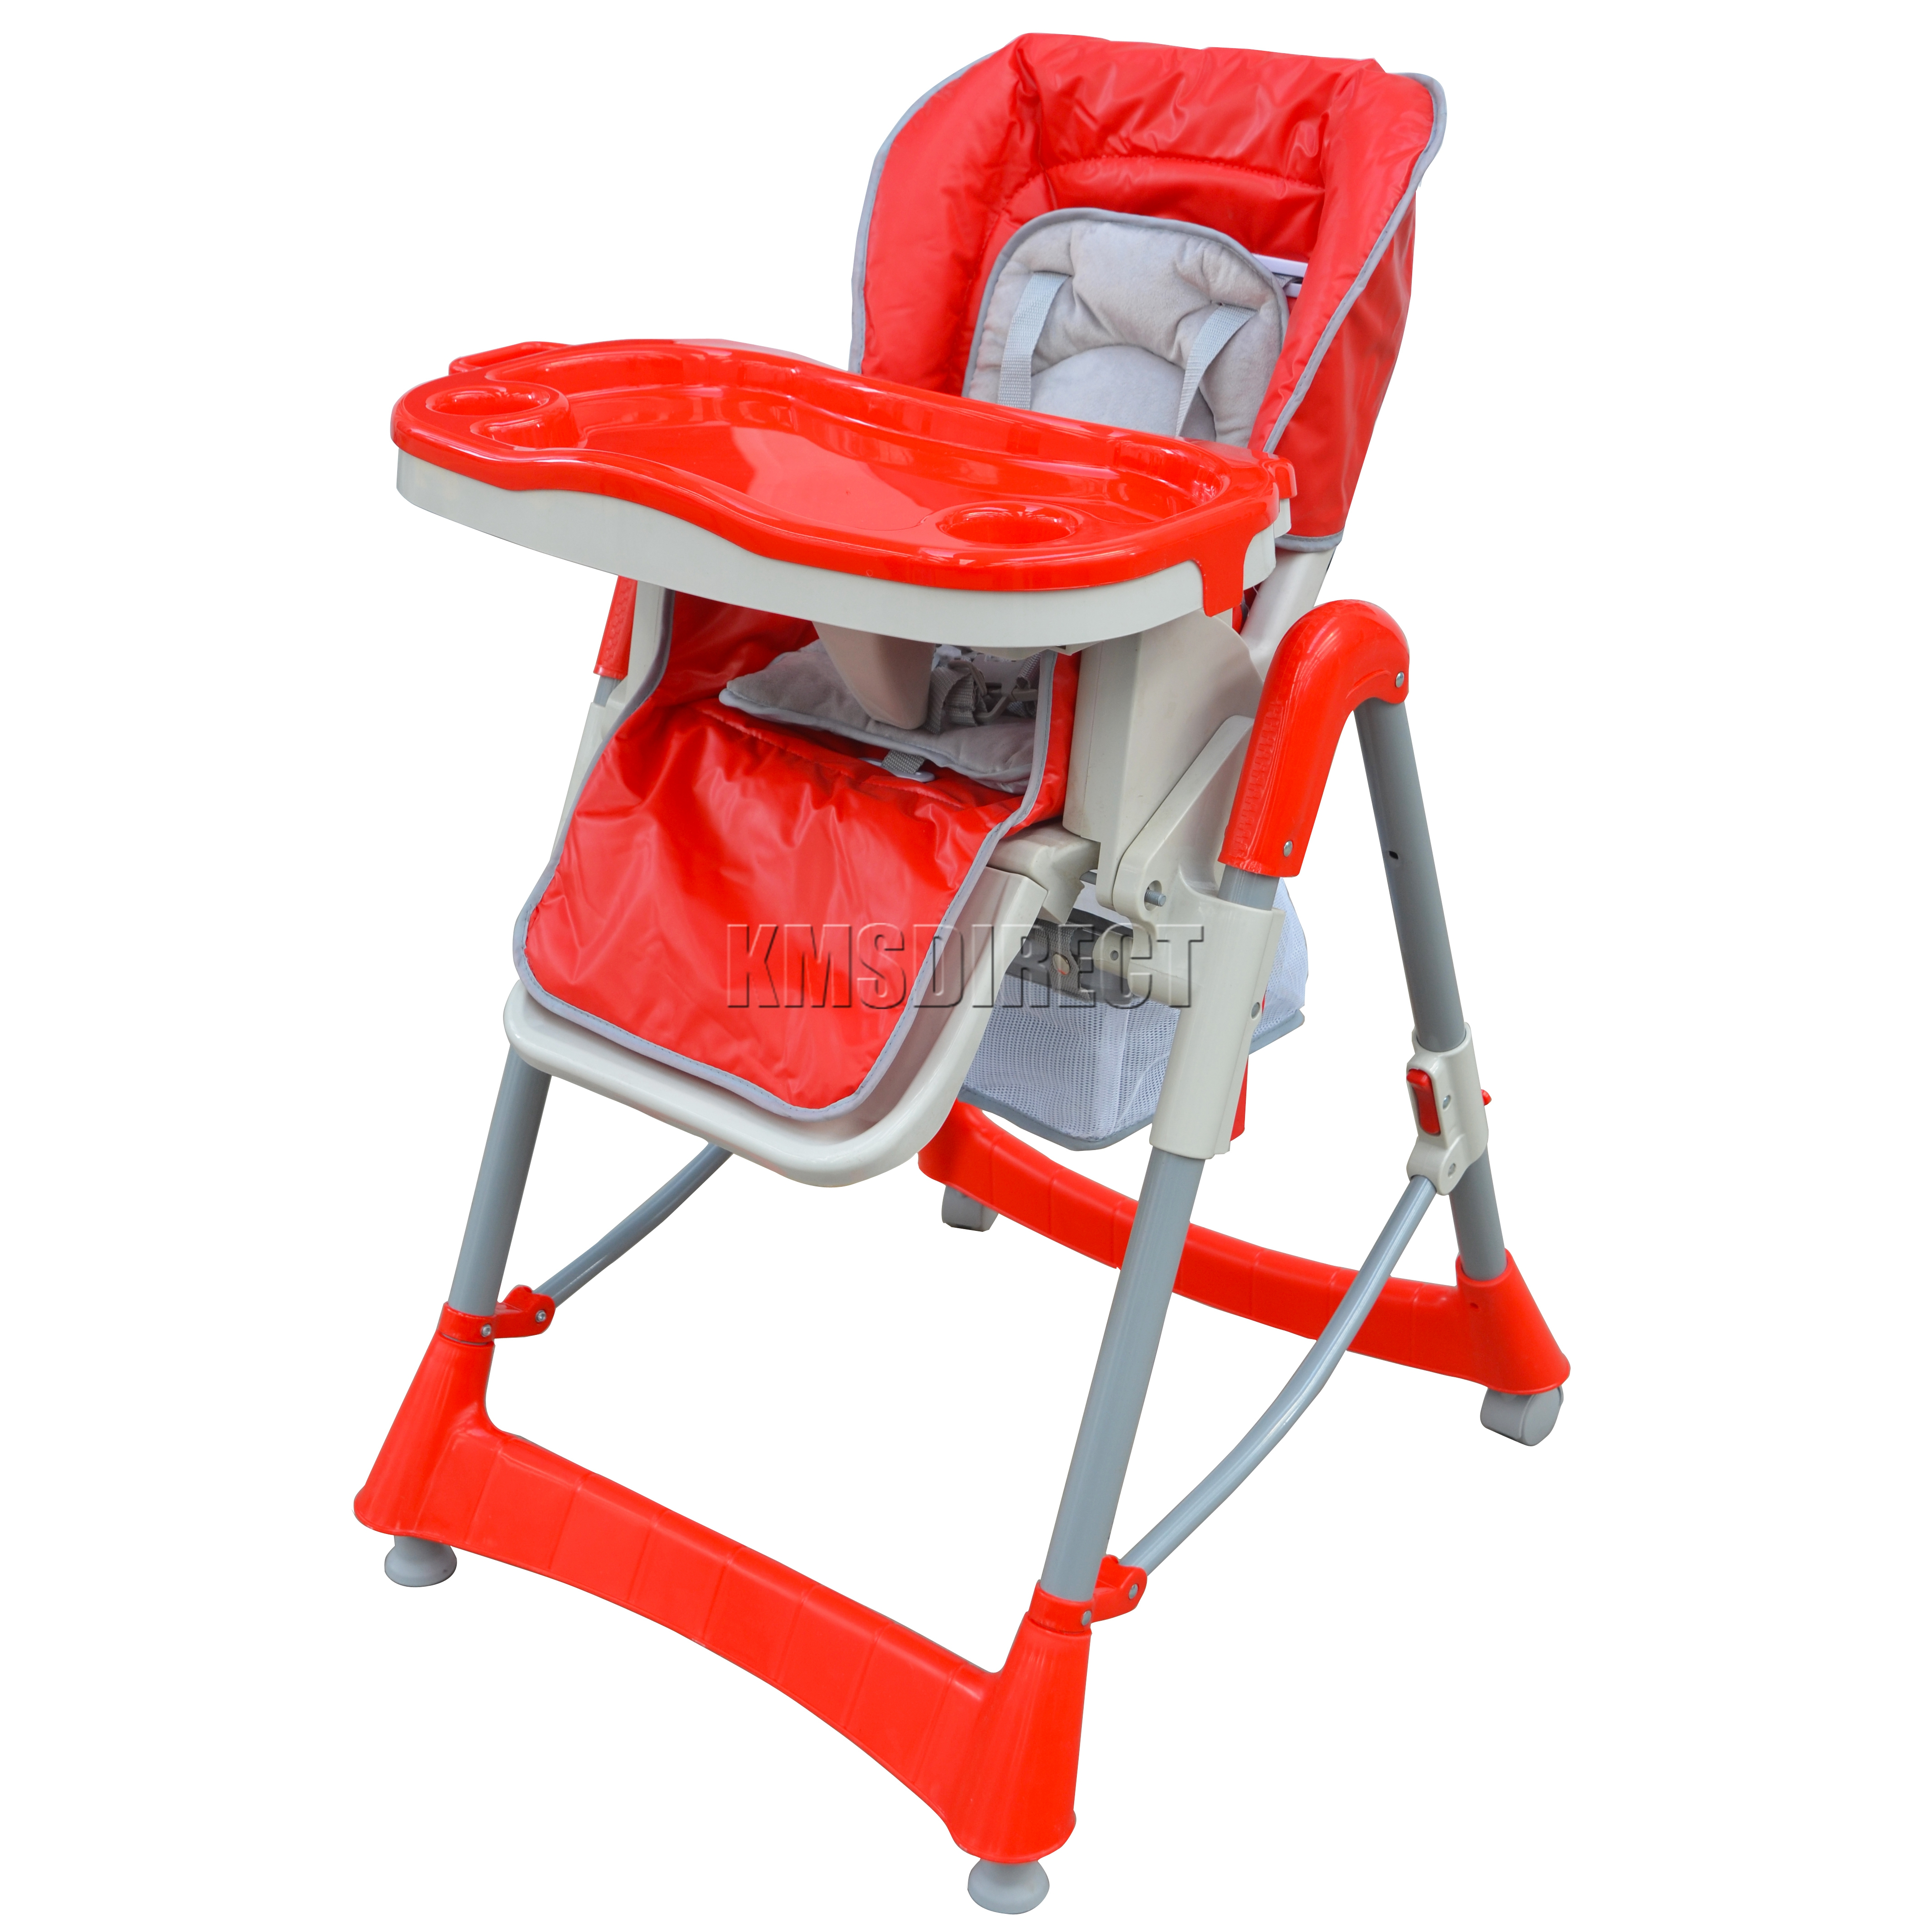 height adjustable baby high chair recline highchair feeding seat cushion tray ebay. Black Bedroom Furniture Sets. Home Design Ideas